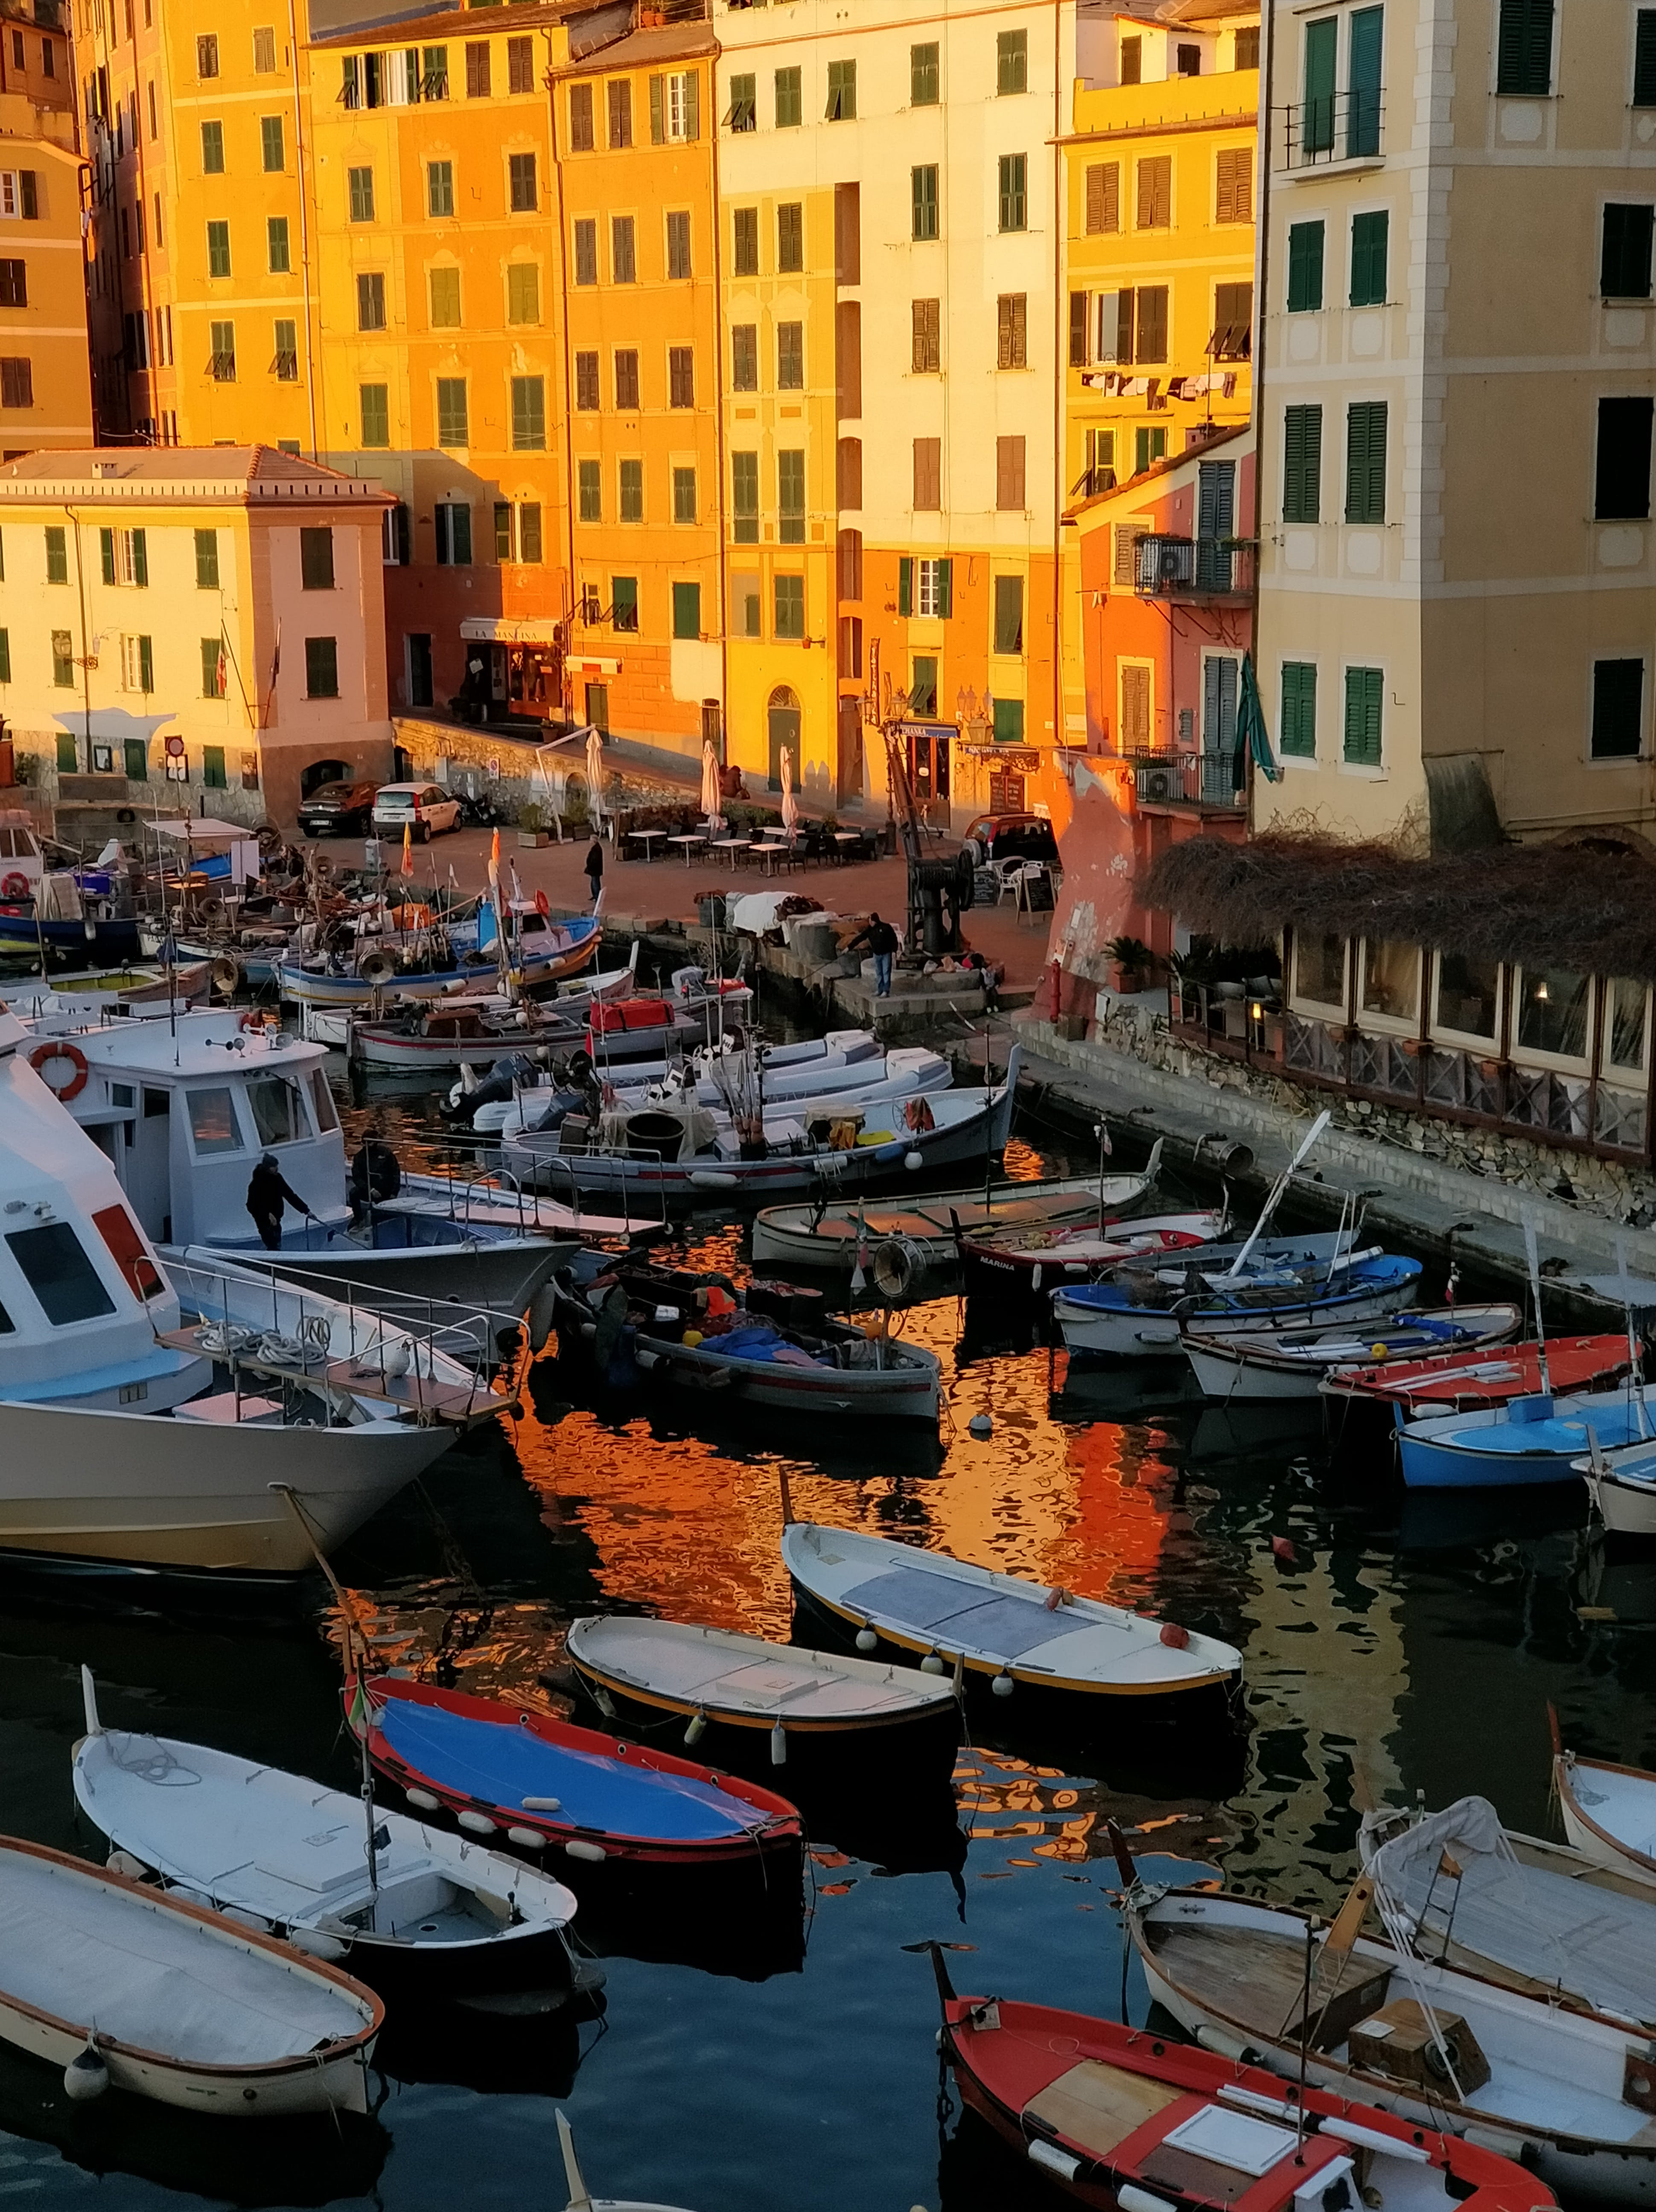 Free stock photo of dock, gloden hour, italy, reflection